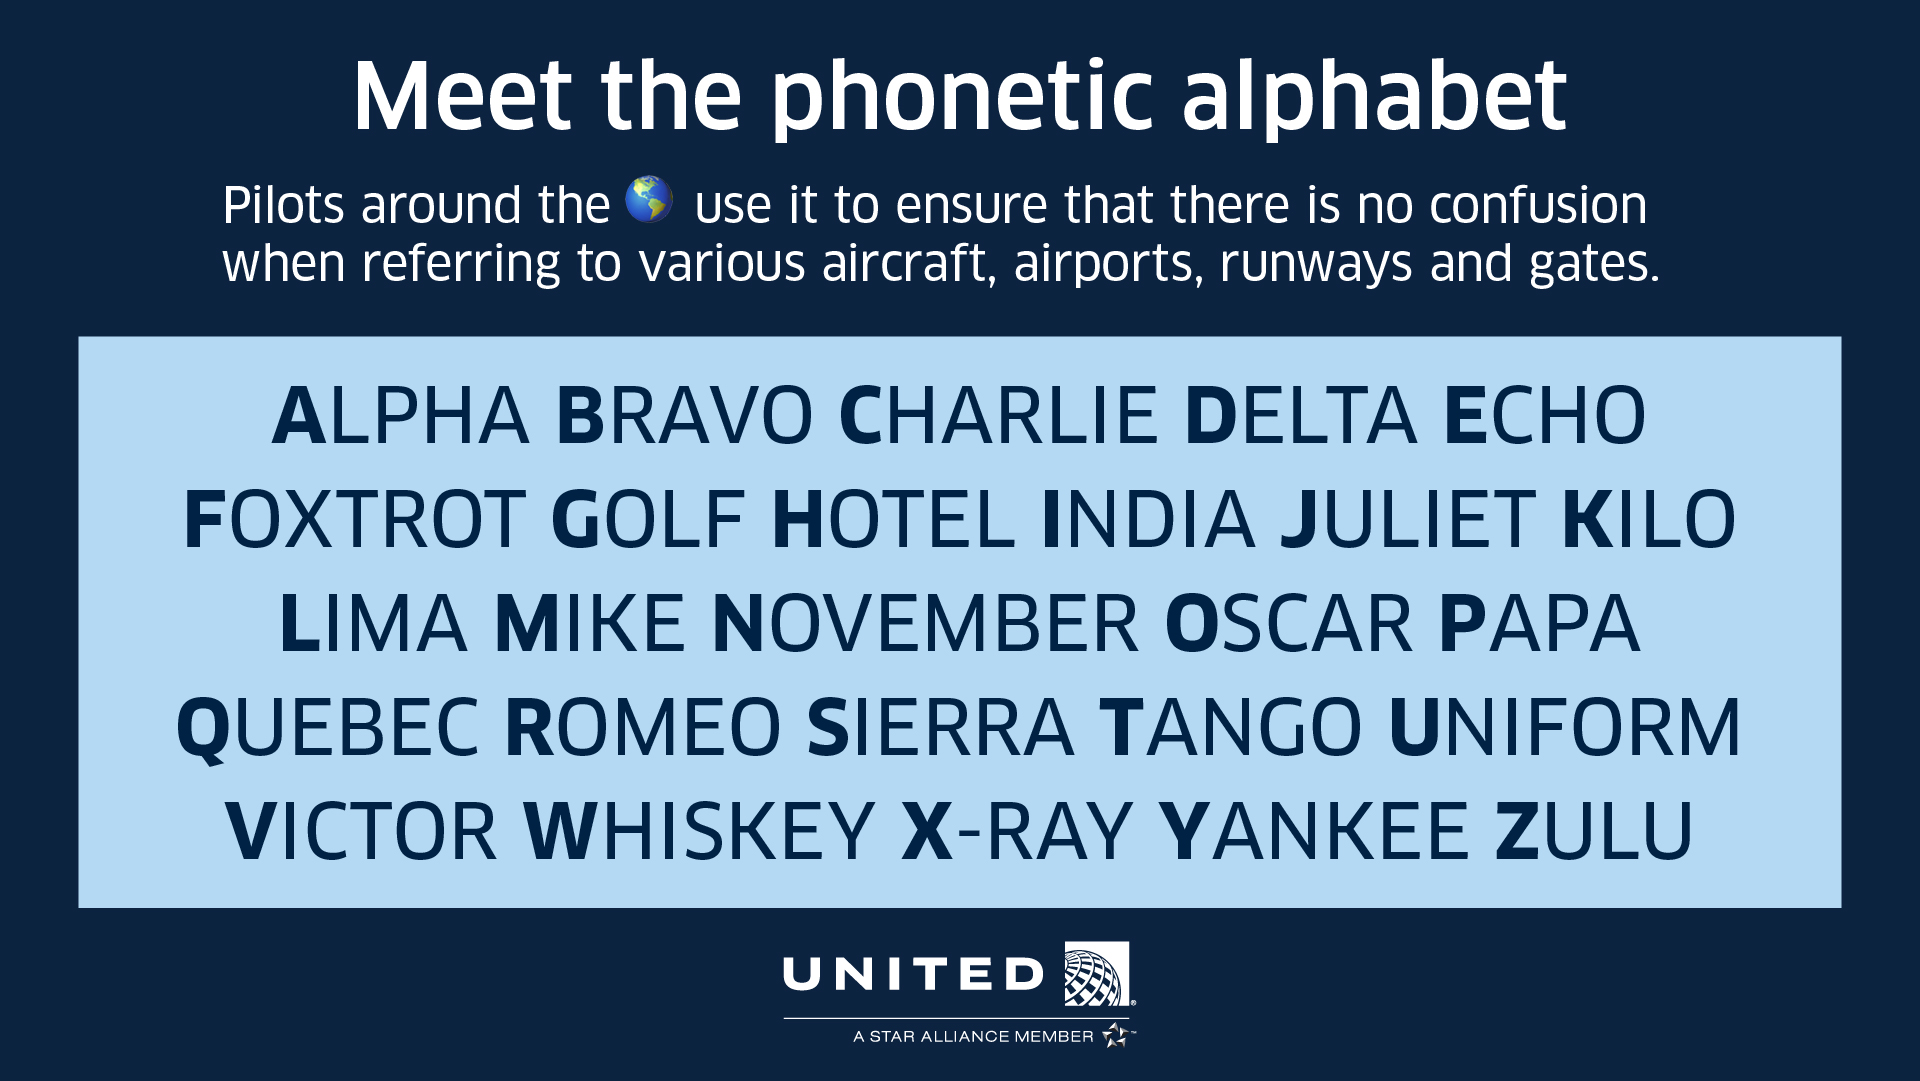 United Airlines On Twitter Using The Phonetic Alphabet Spell Out Where You Re Going Next Below